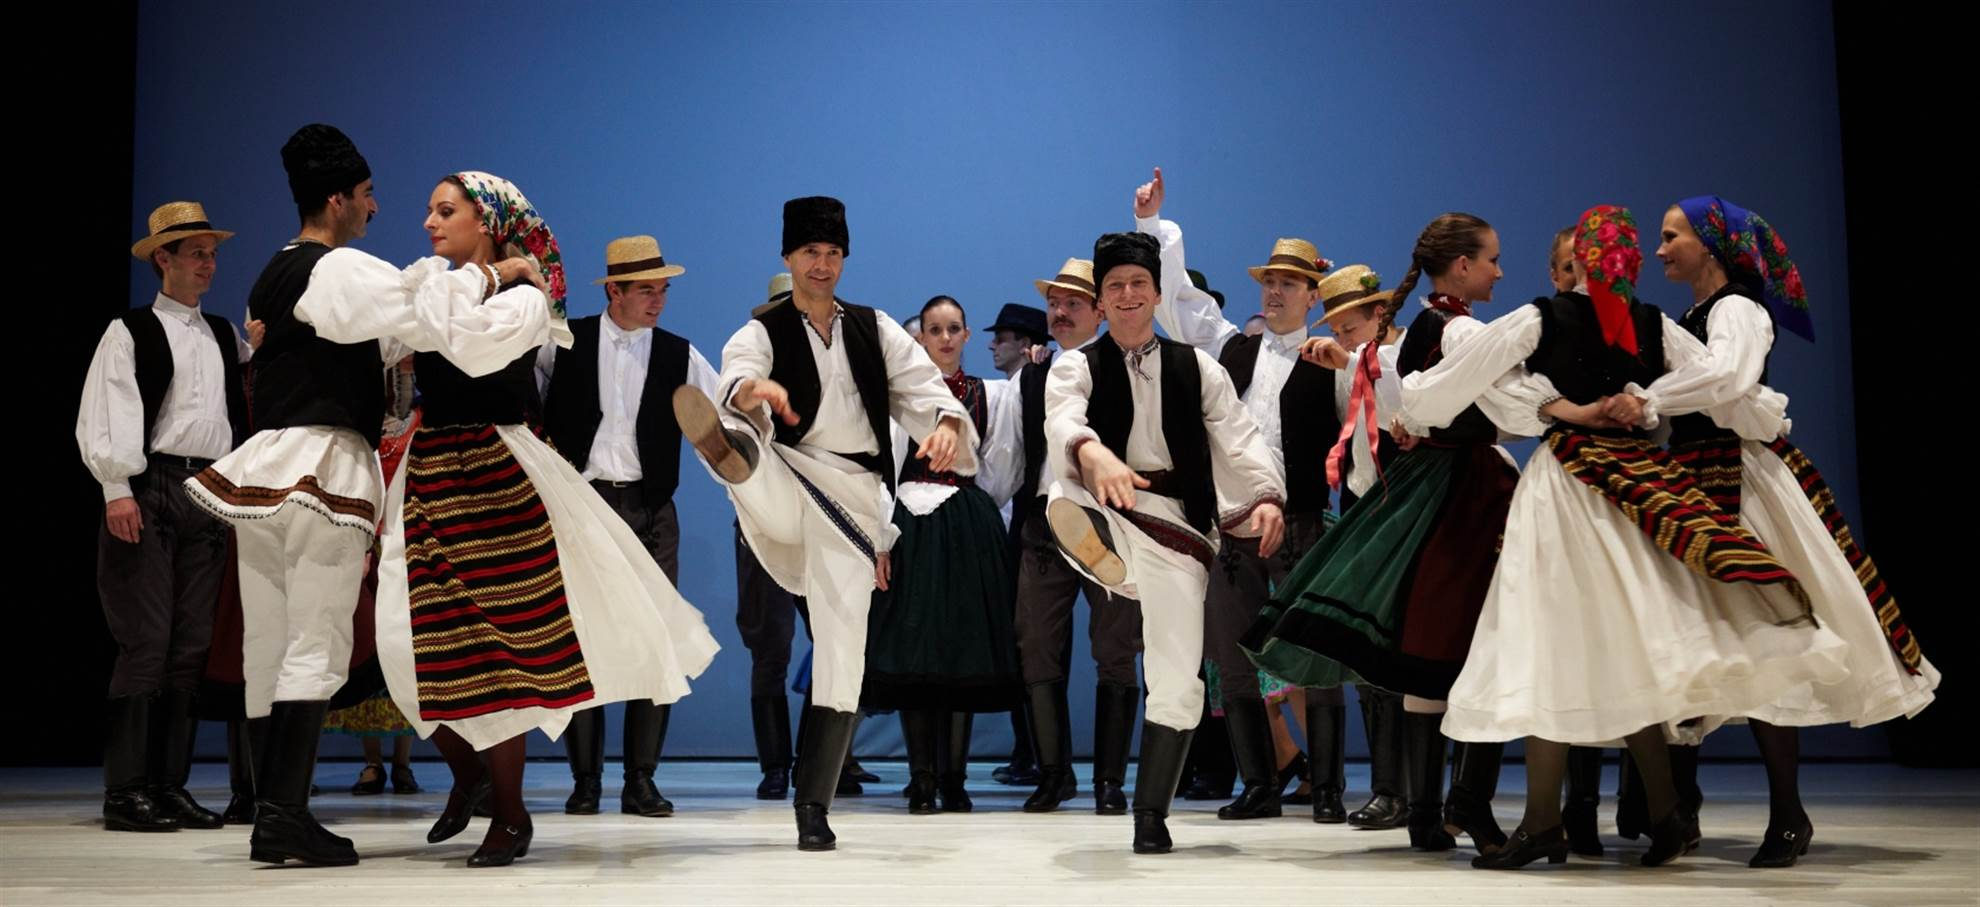 Hungarian Dance Performance in Budapest